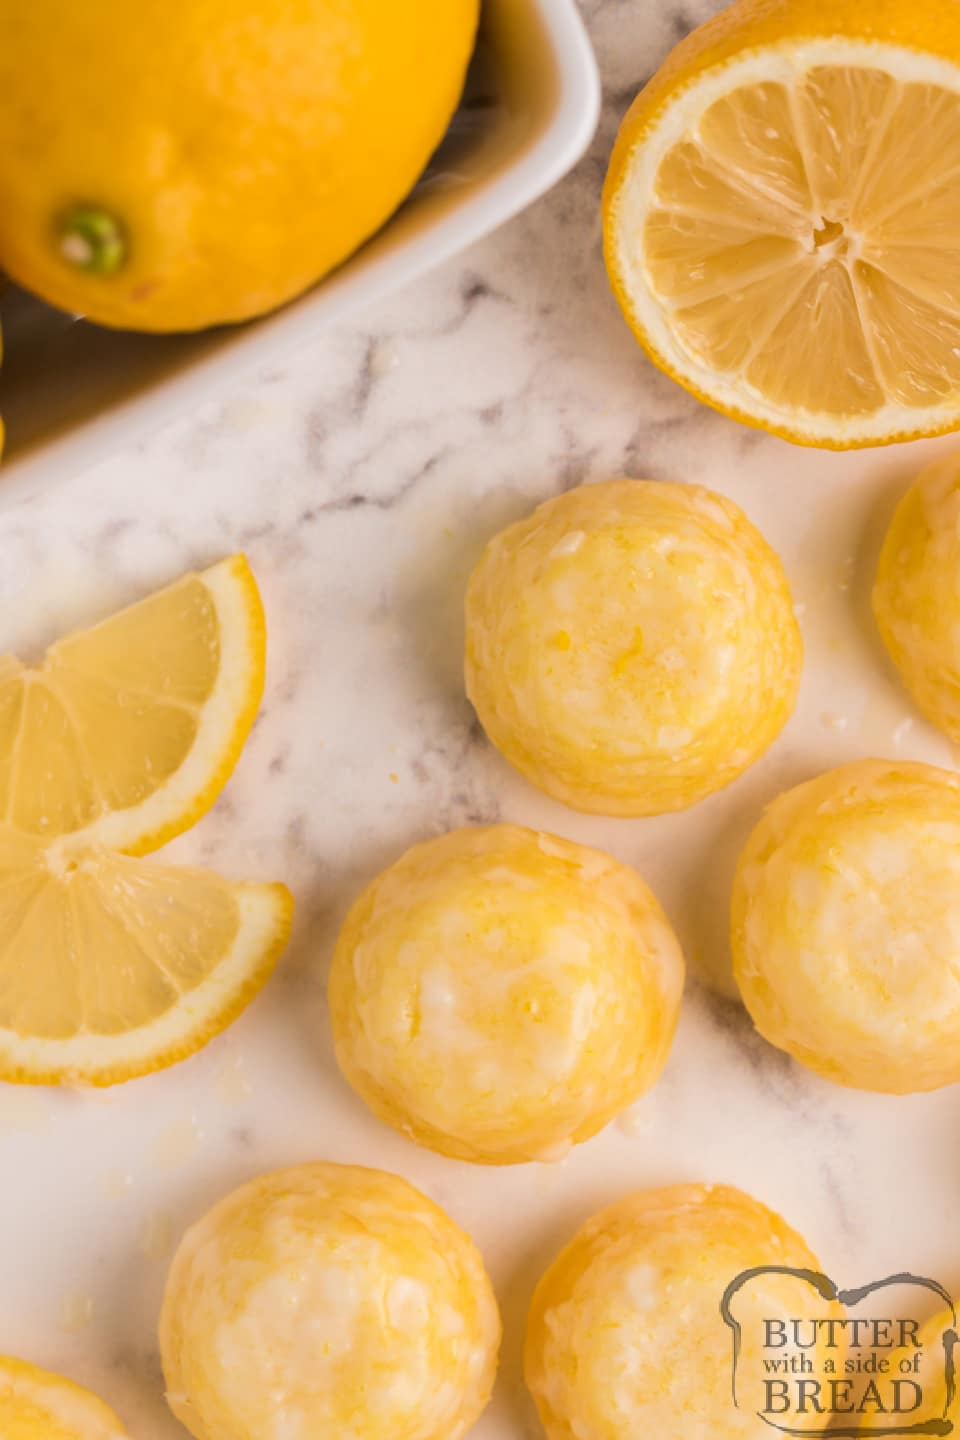 Mini Lemon Drop Cupcakes are delicious bite-sized treats that start with a lemon cake mix! The easy lemon glaze soaks into the inverted mini cupcakes and is a simple, incredibly delicious lemon cake mix recipe!